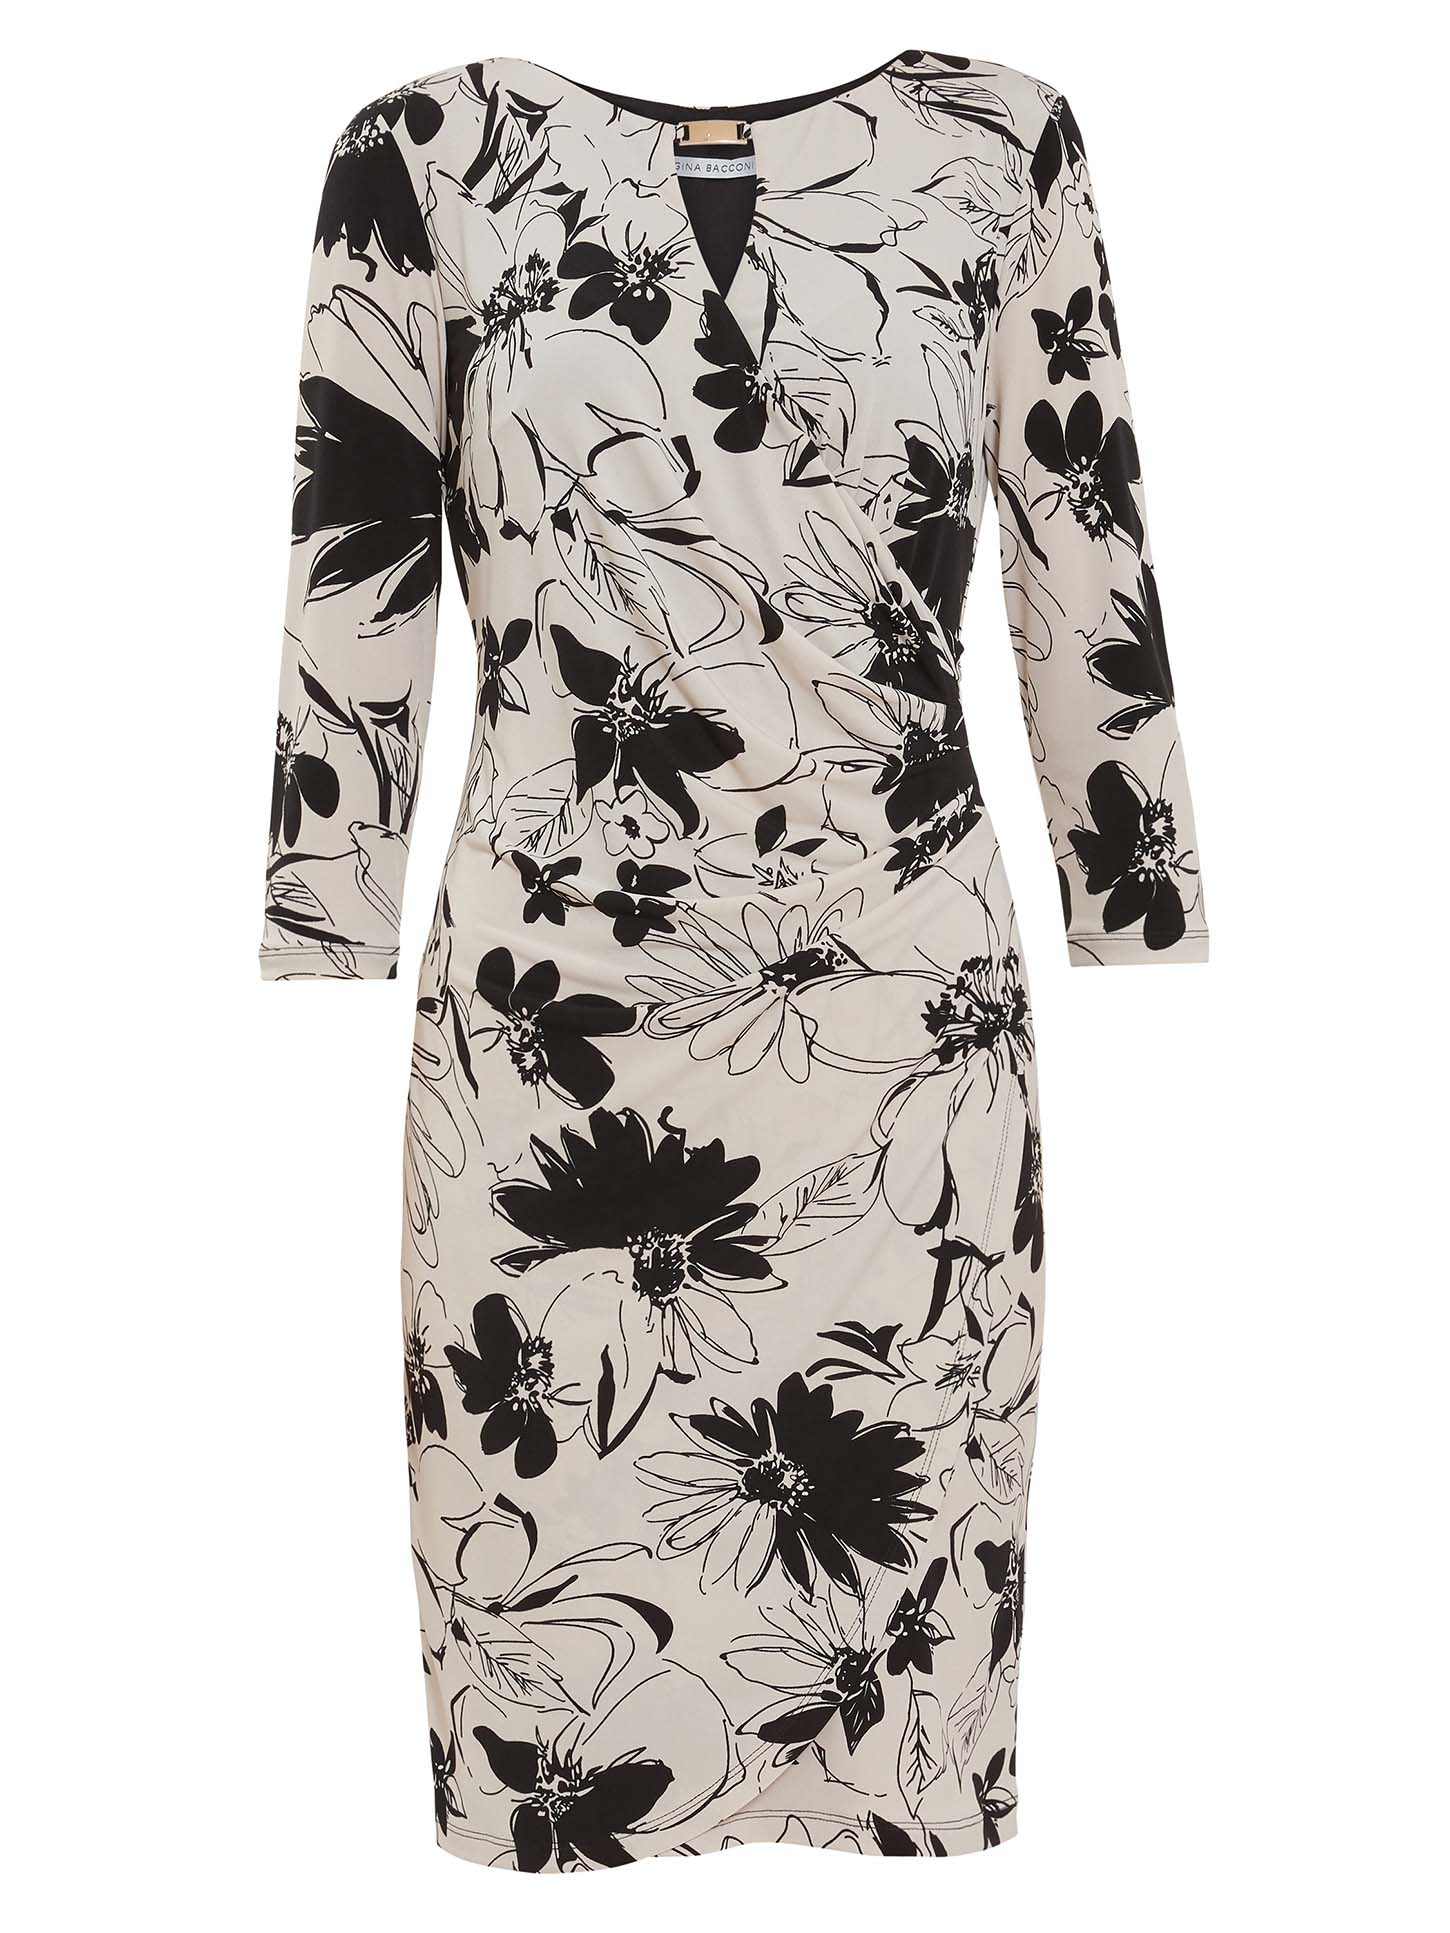 Cladine Floral Jersey Dress